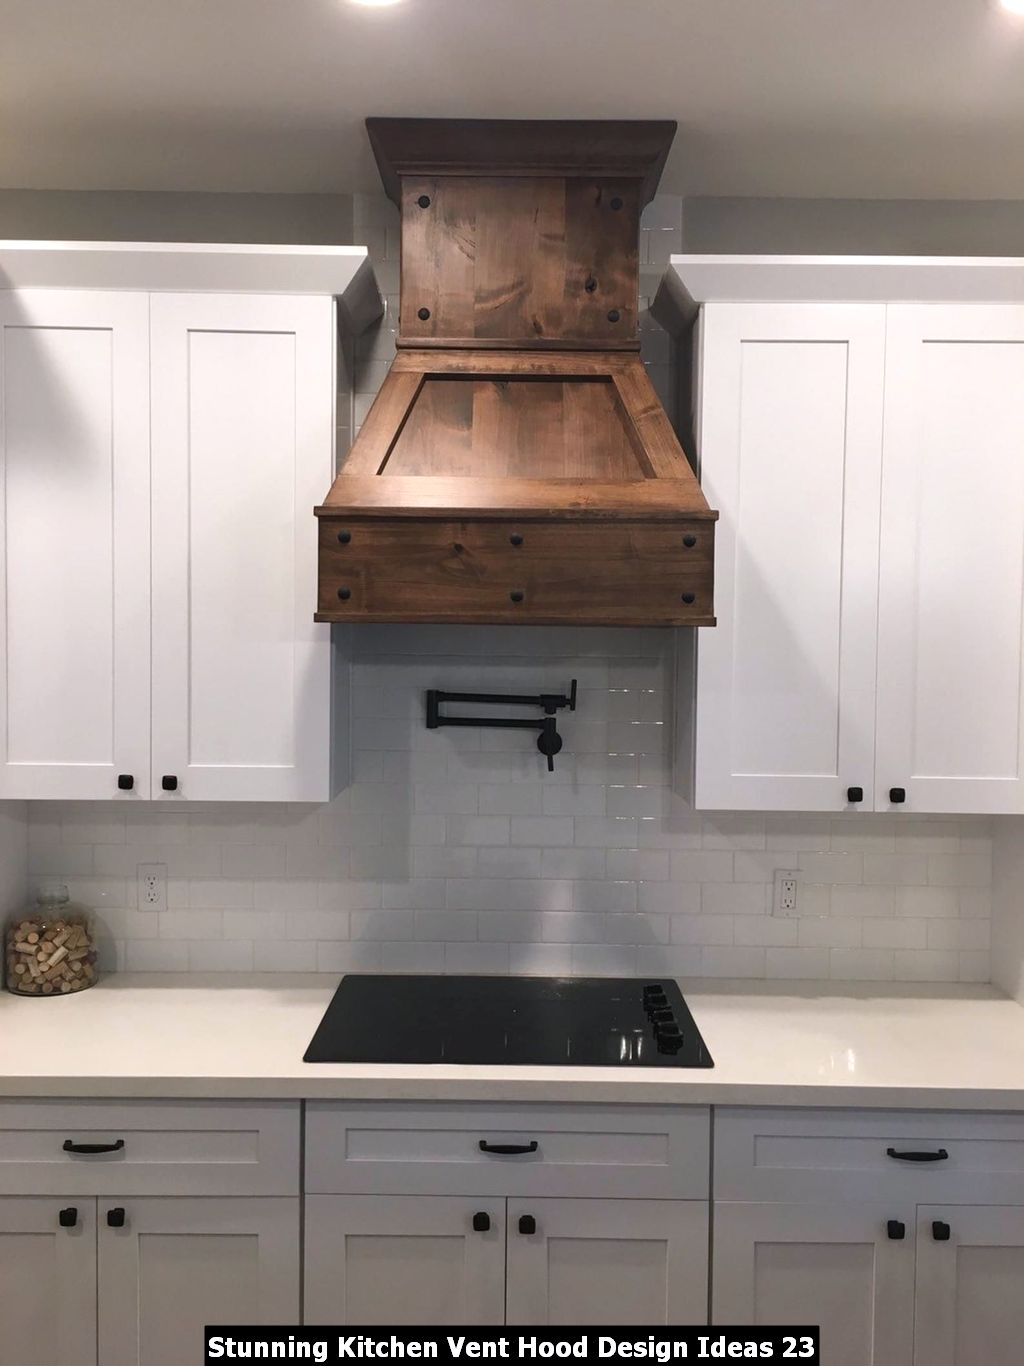 Stunning Kitchen Vent Hood Design Ideas 23